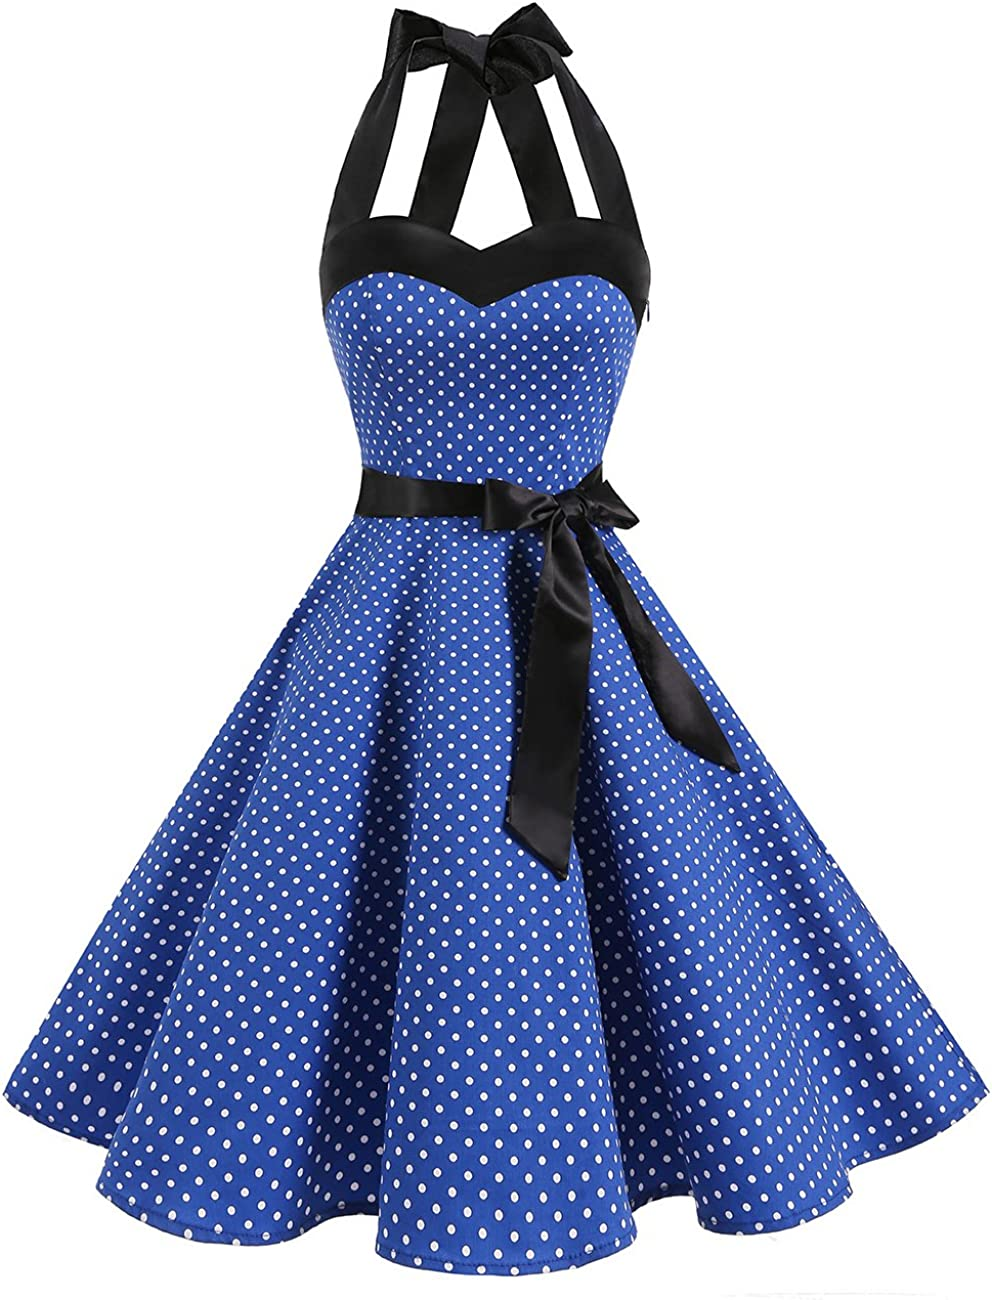 TALLA XL. Dresstells® Halter 50s Rockabilly Polka Dots Audrey Dress Retro Cocktail Dress Royal Blue Small White Dot XL